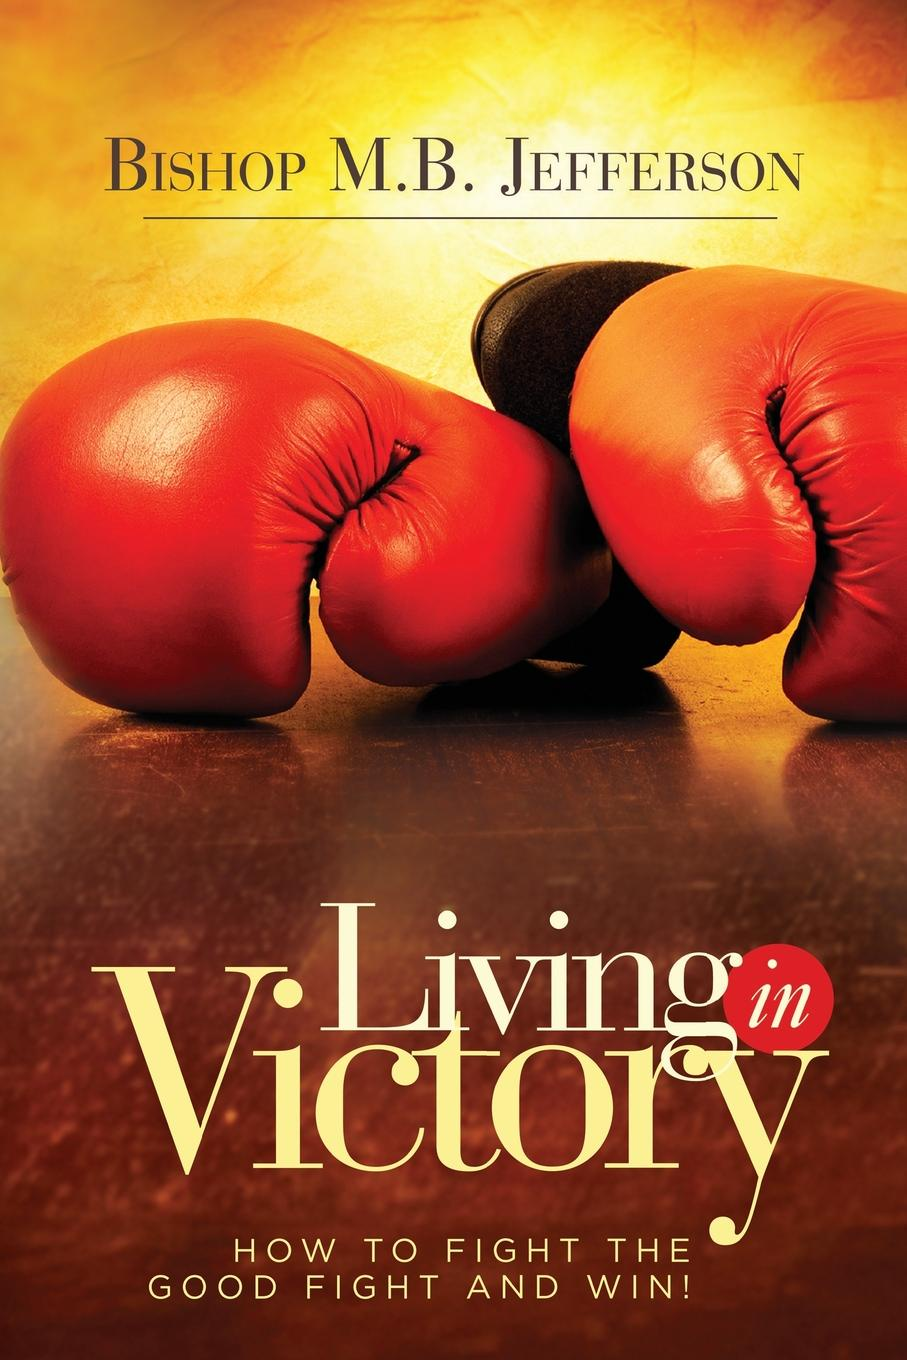 Bishop M. B. Jefferson Living in Victory. How to Fight the Good Fight and Win jordan d lewis trusted partners how companies build mutual trust and win together